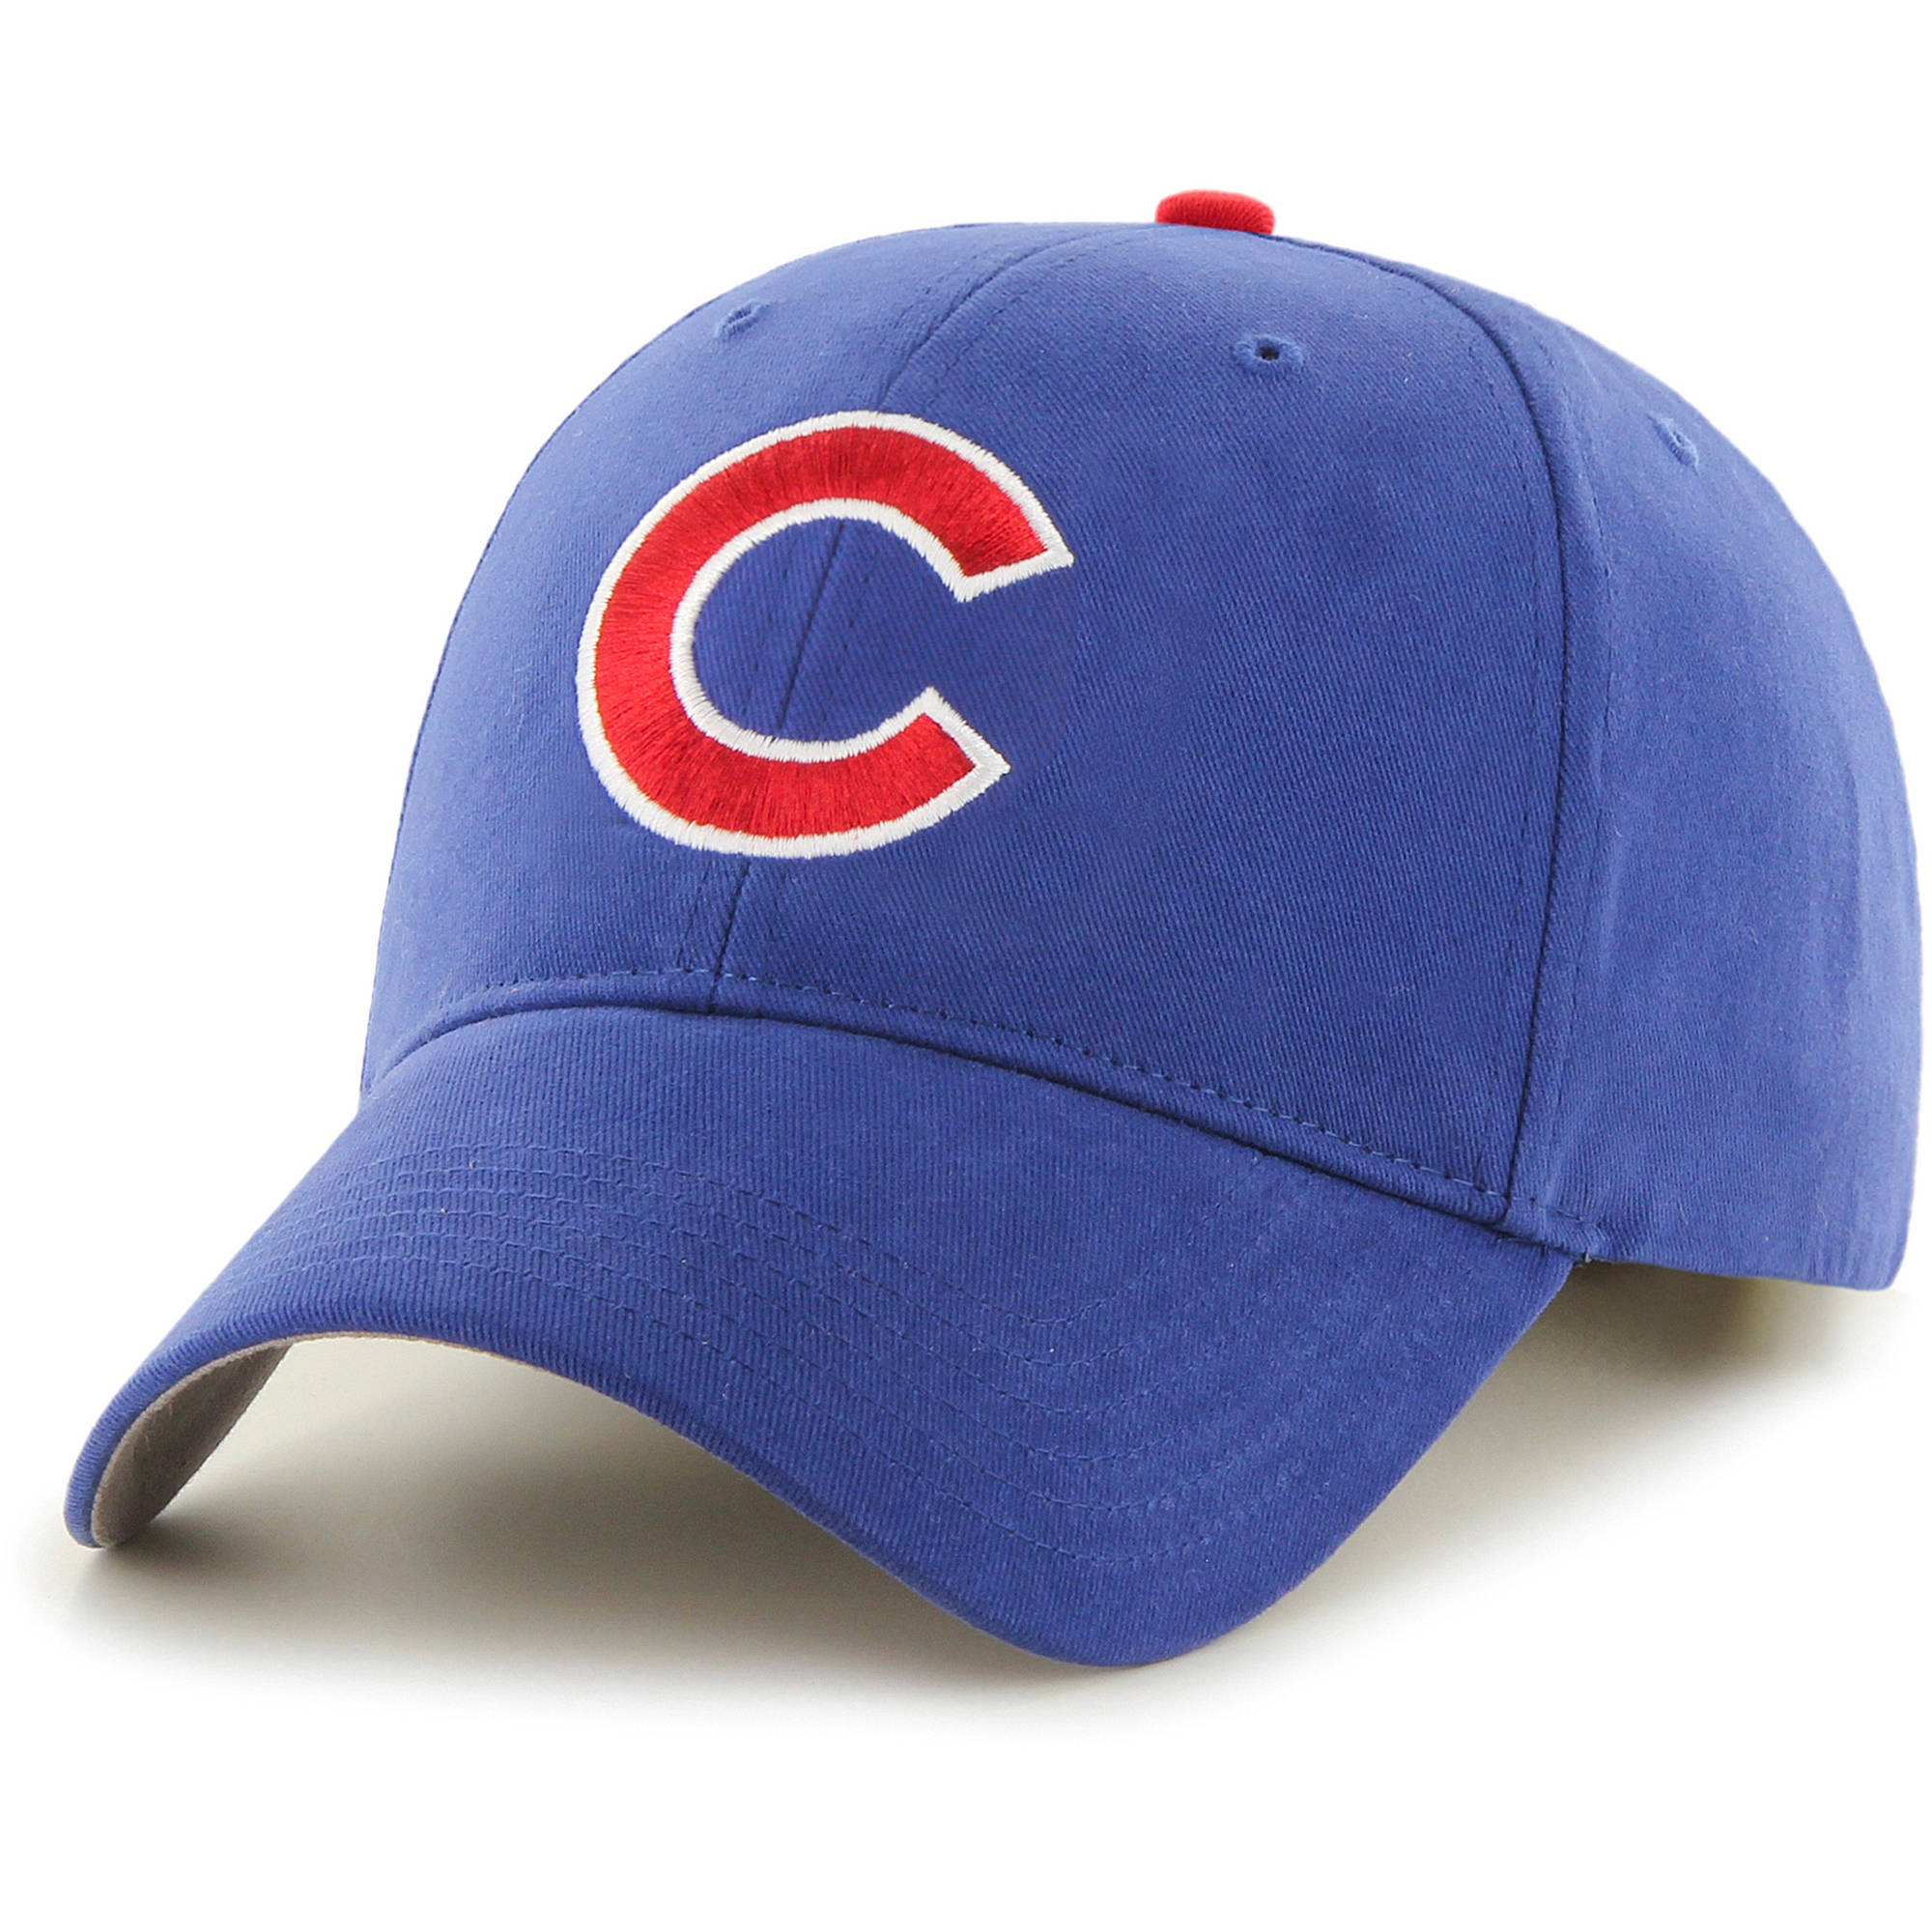 MLB Chicago Cubs Basic Cap / Hat - Fan Favorite